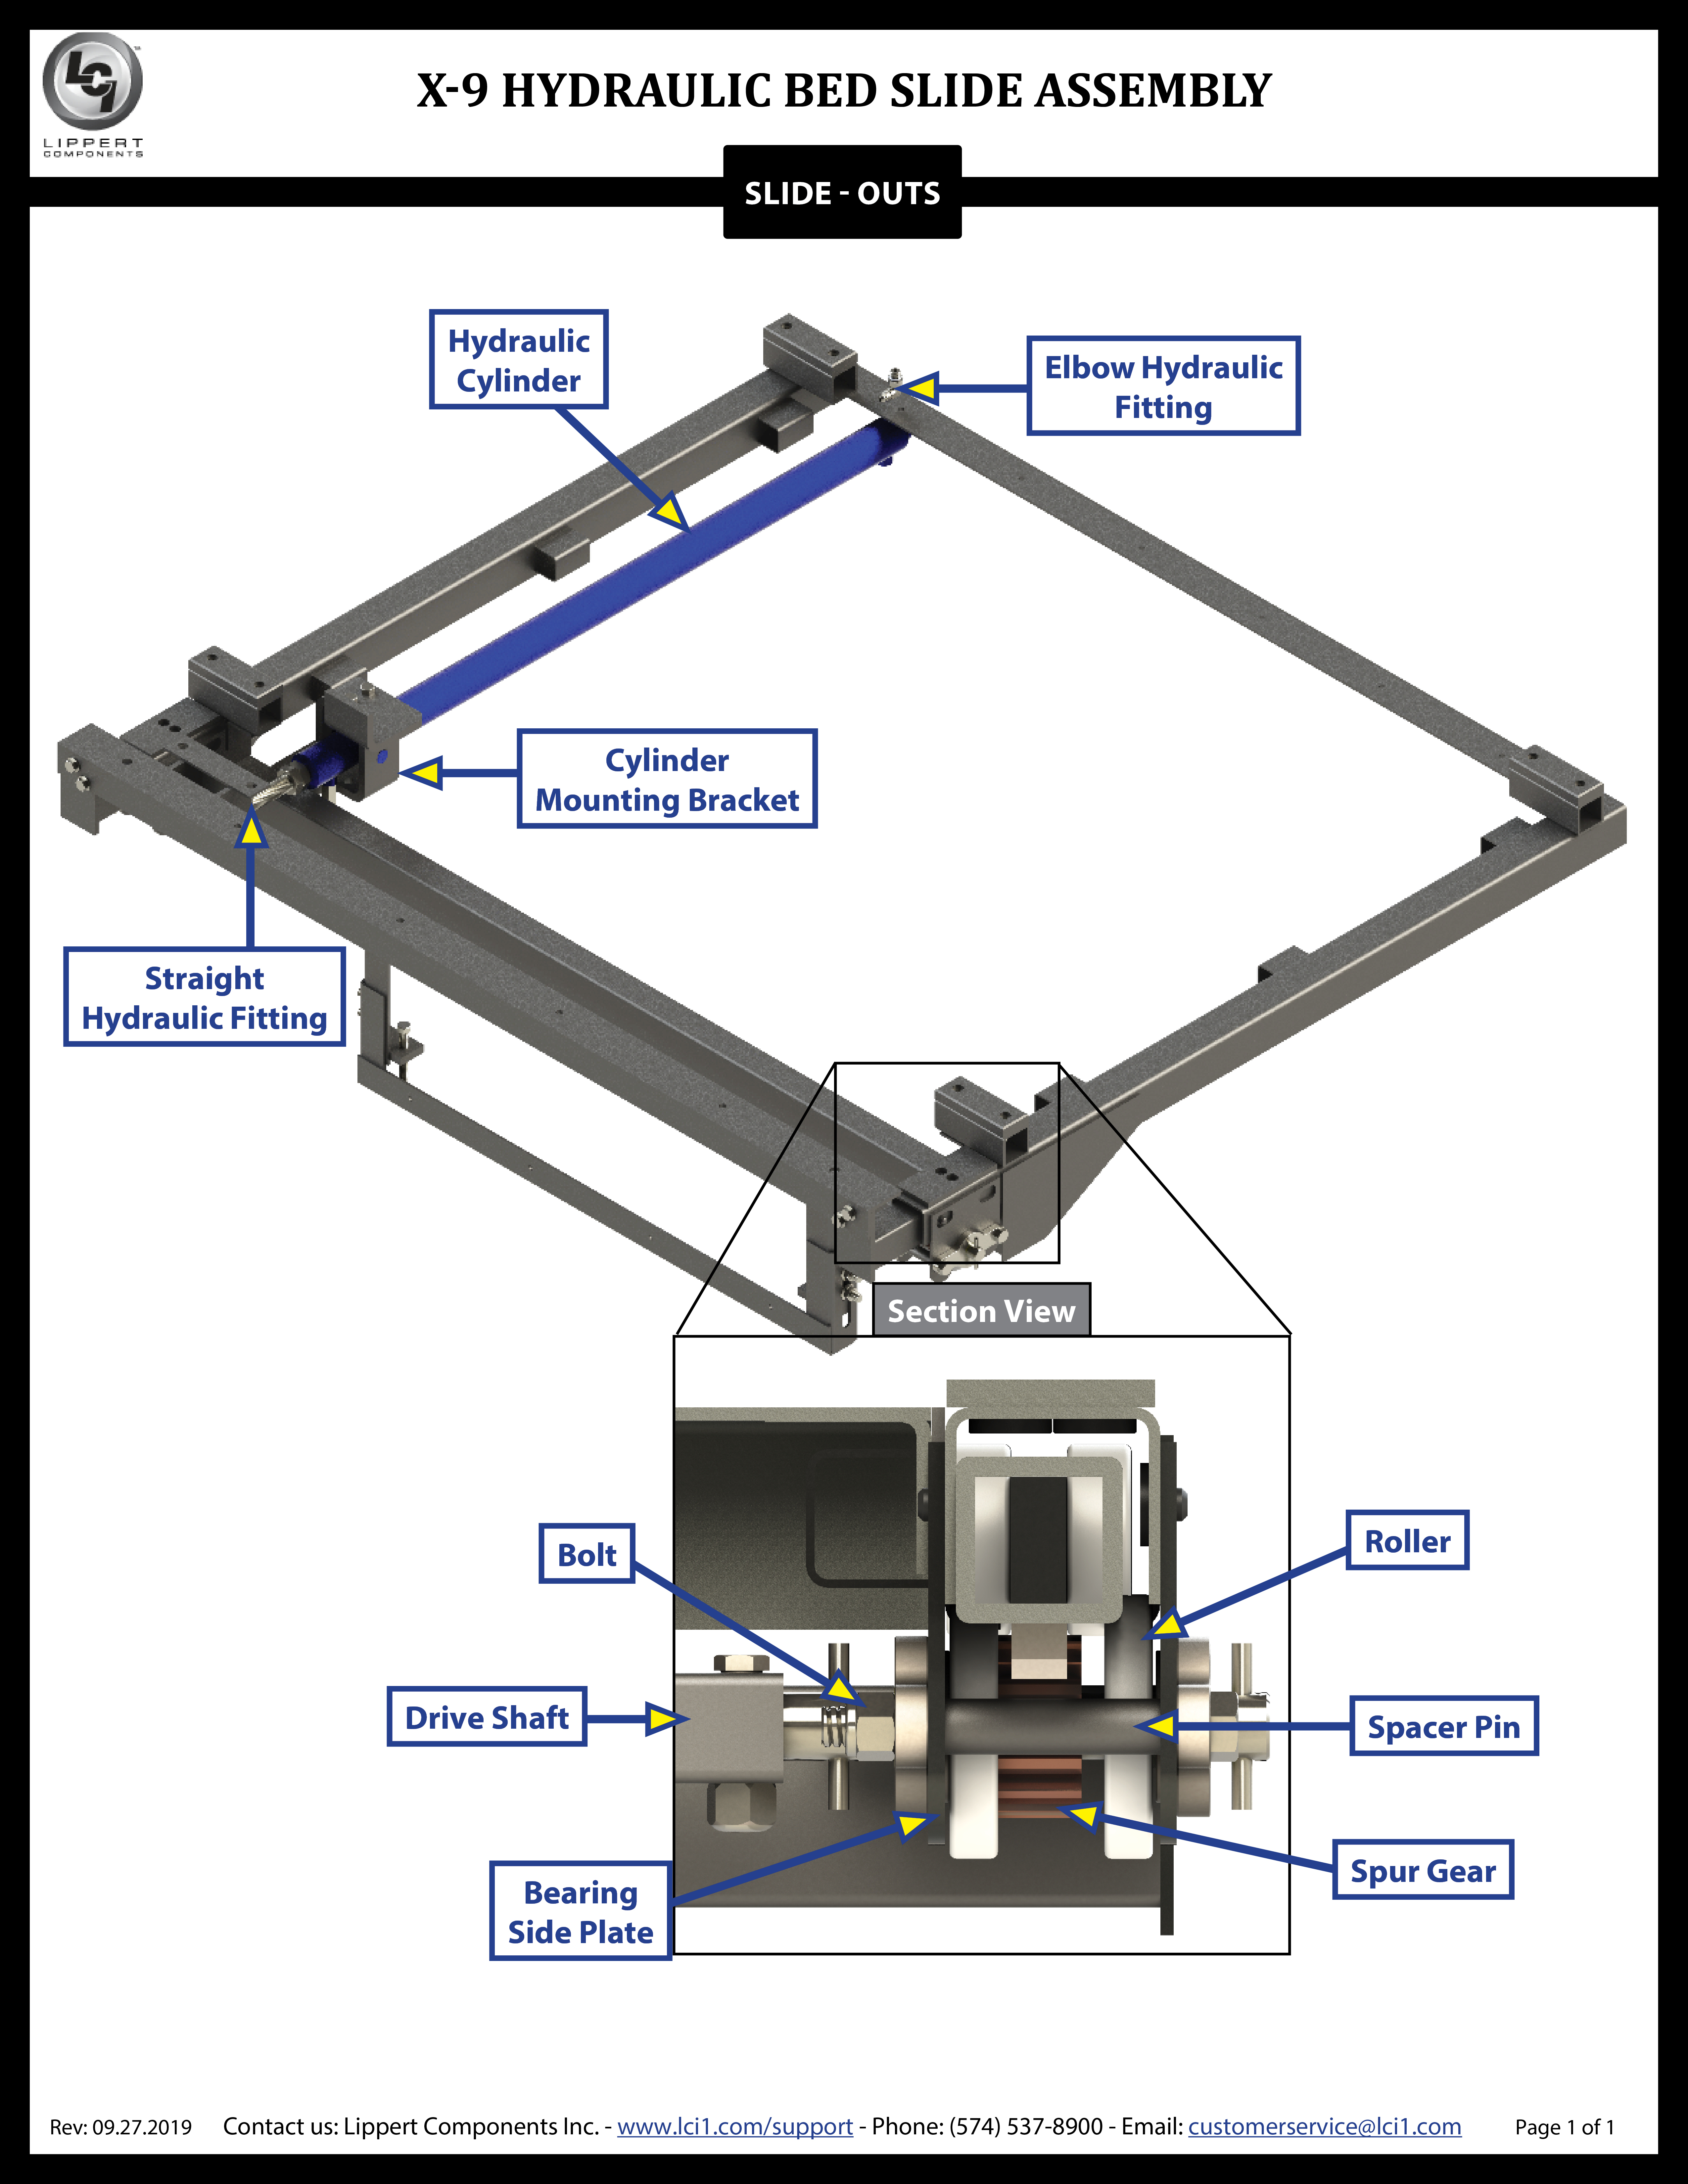 X-9 Hydraulic Bed Slide System Assembly